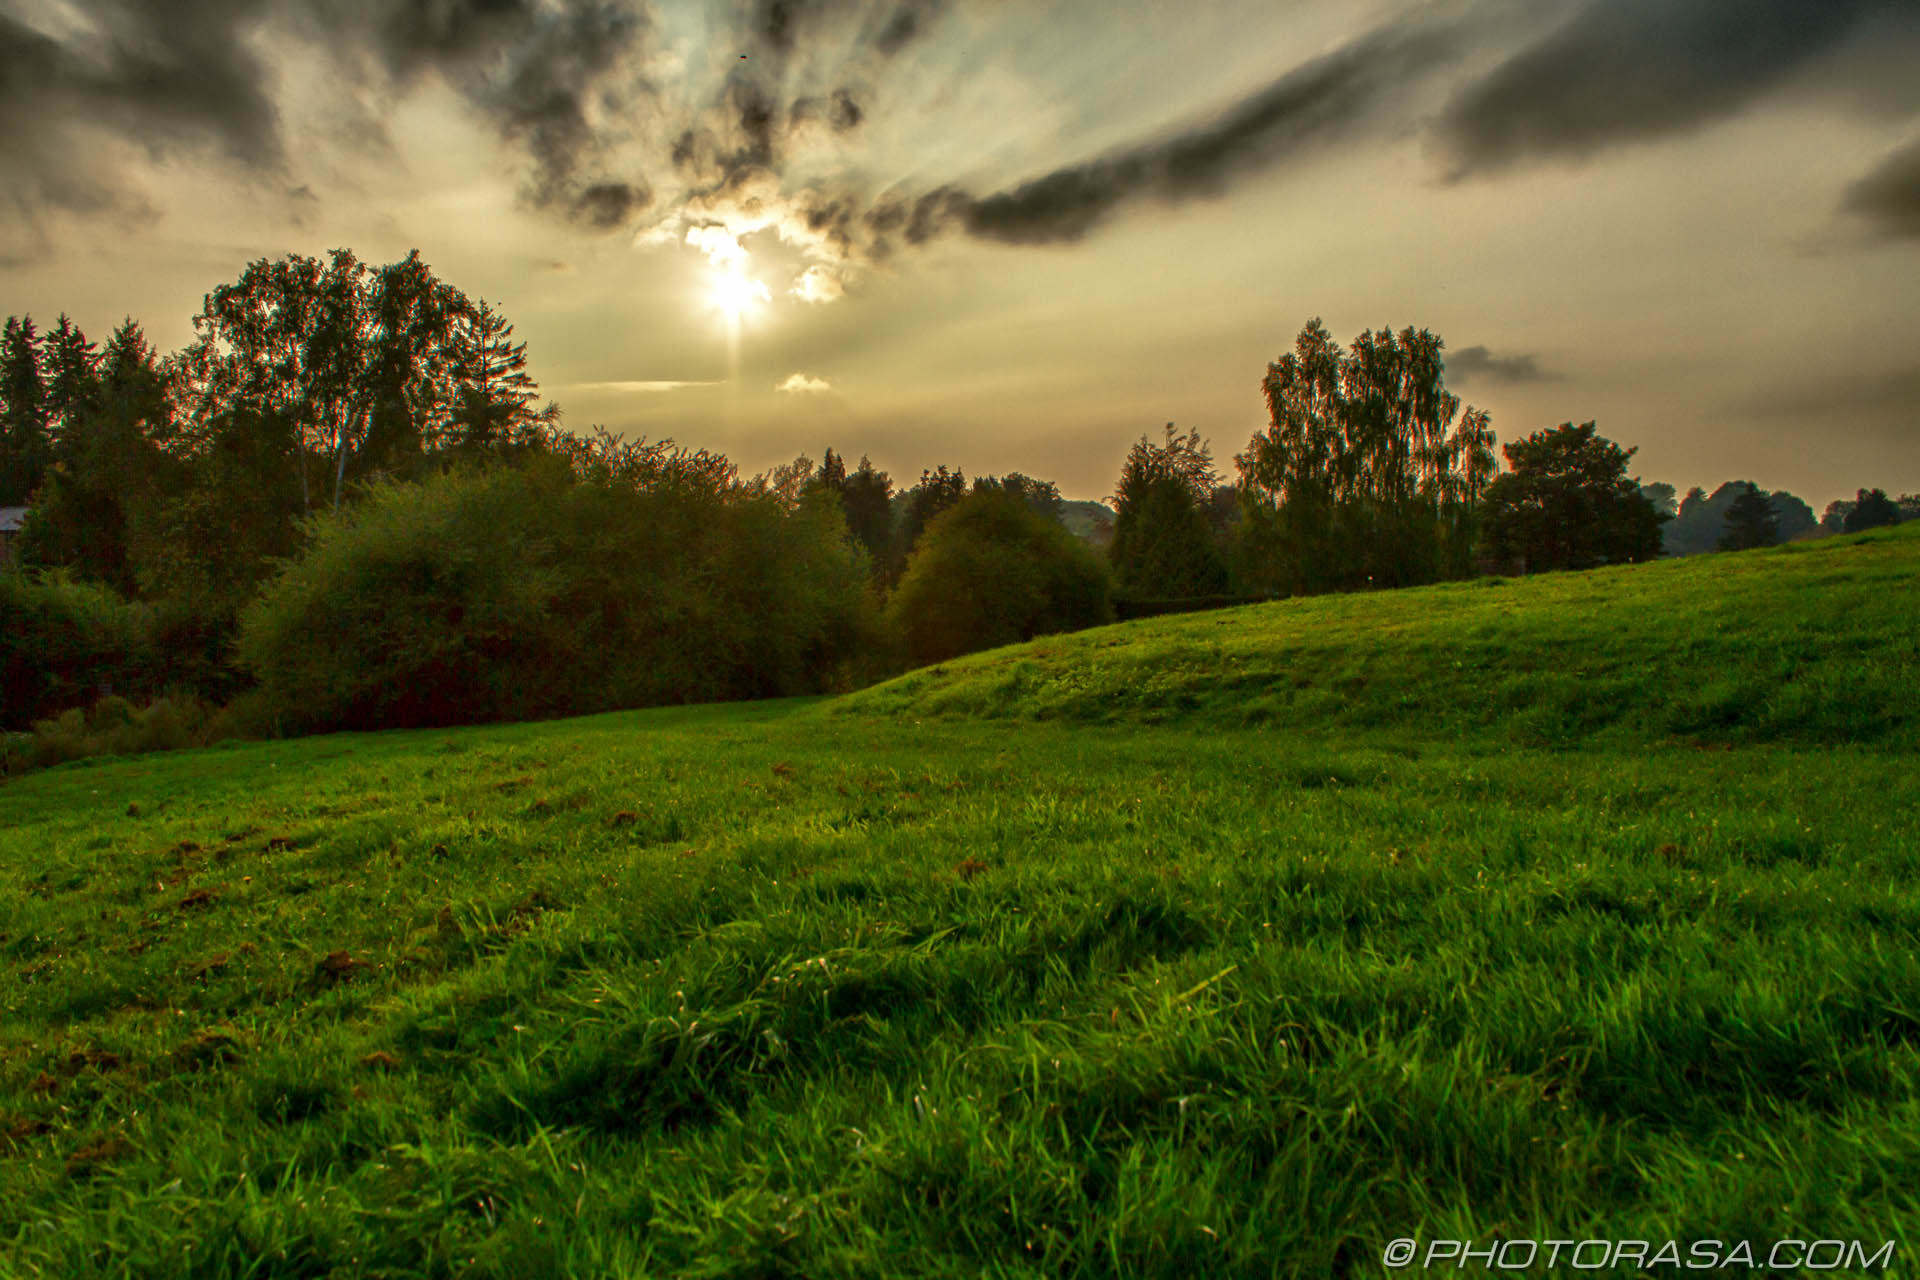 http://photorasa.com/loose-village/late-afternoon-sun-over-a-green-pasture/